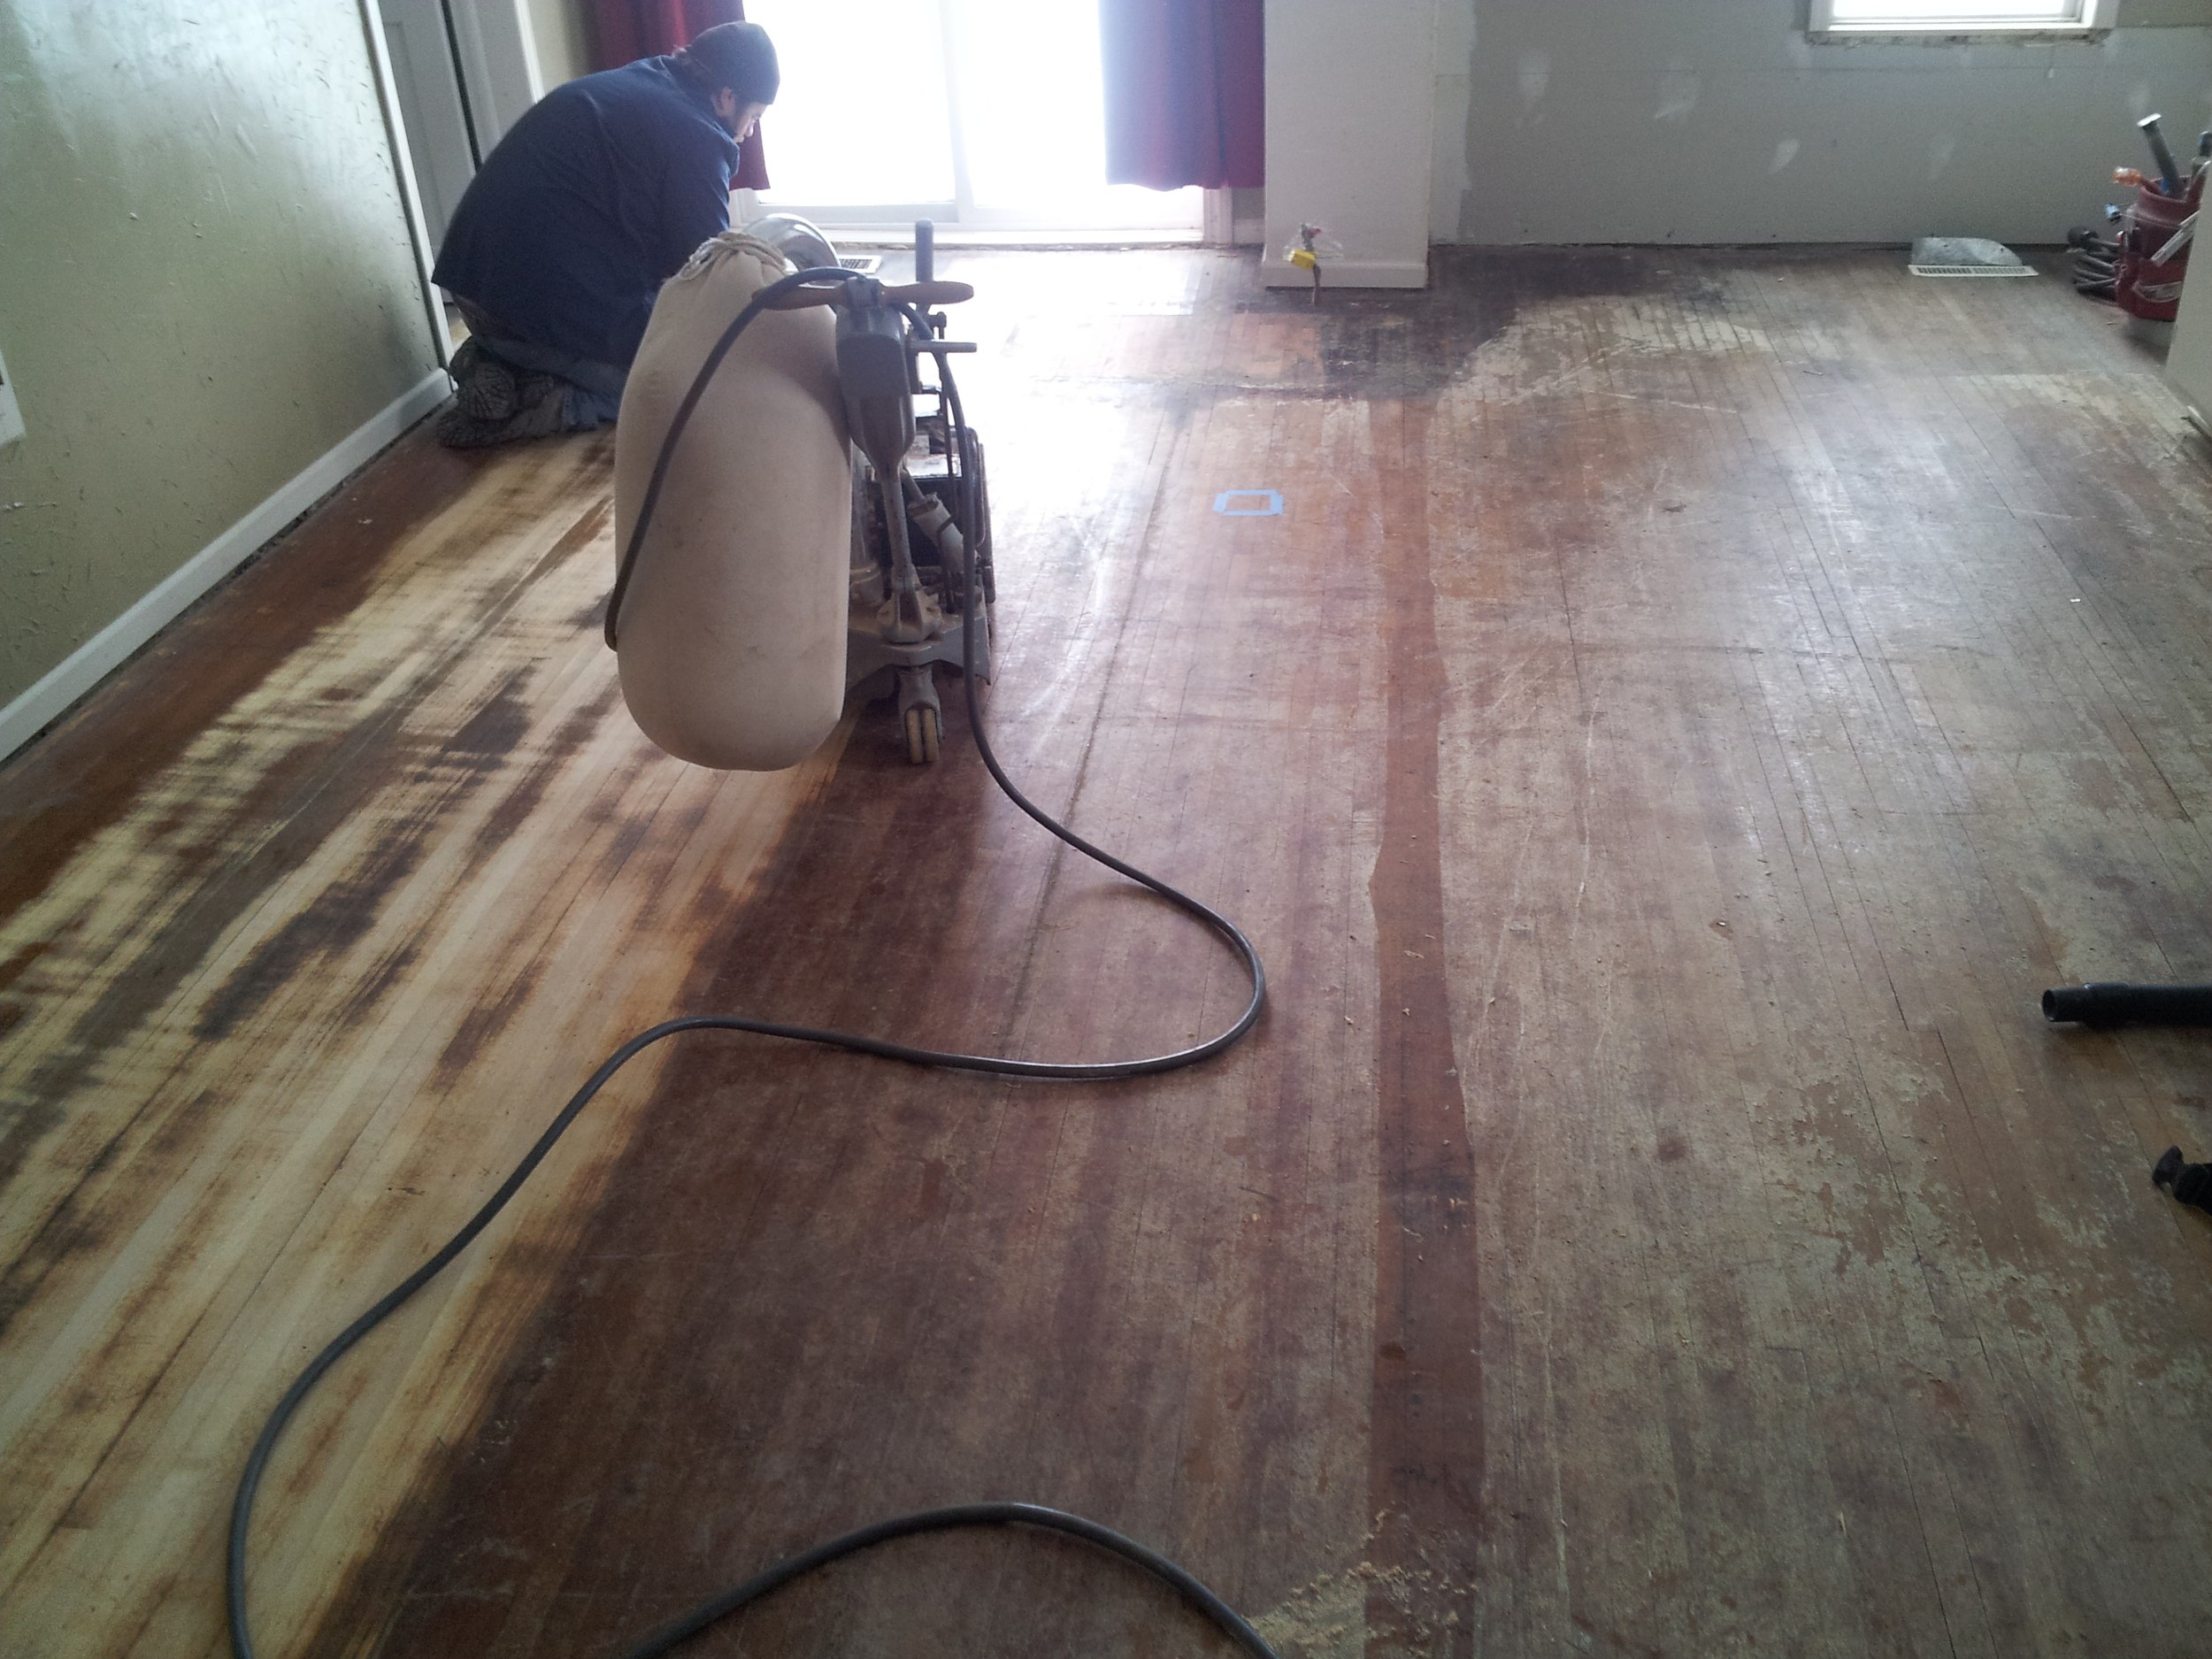 Sanding an old farmhouse hardwood floor. The process makes quite a difference!